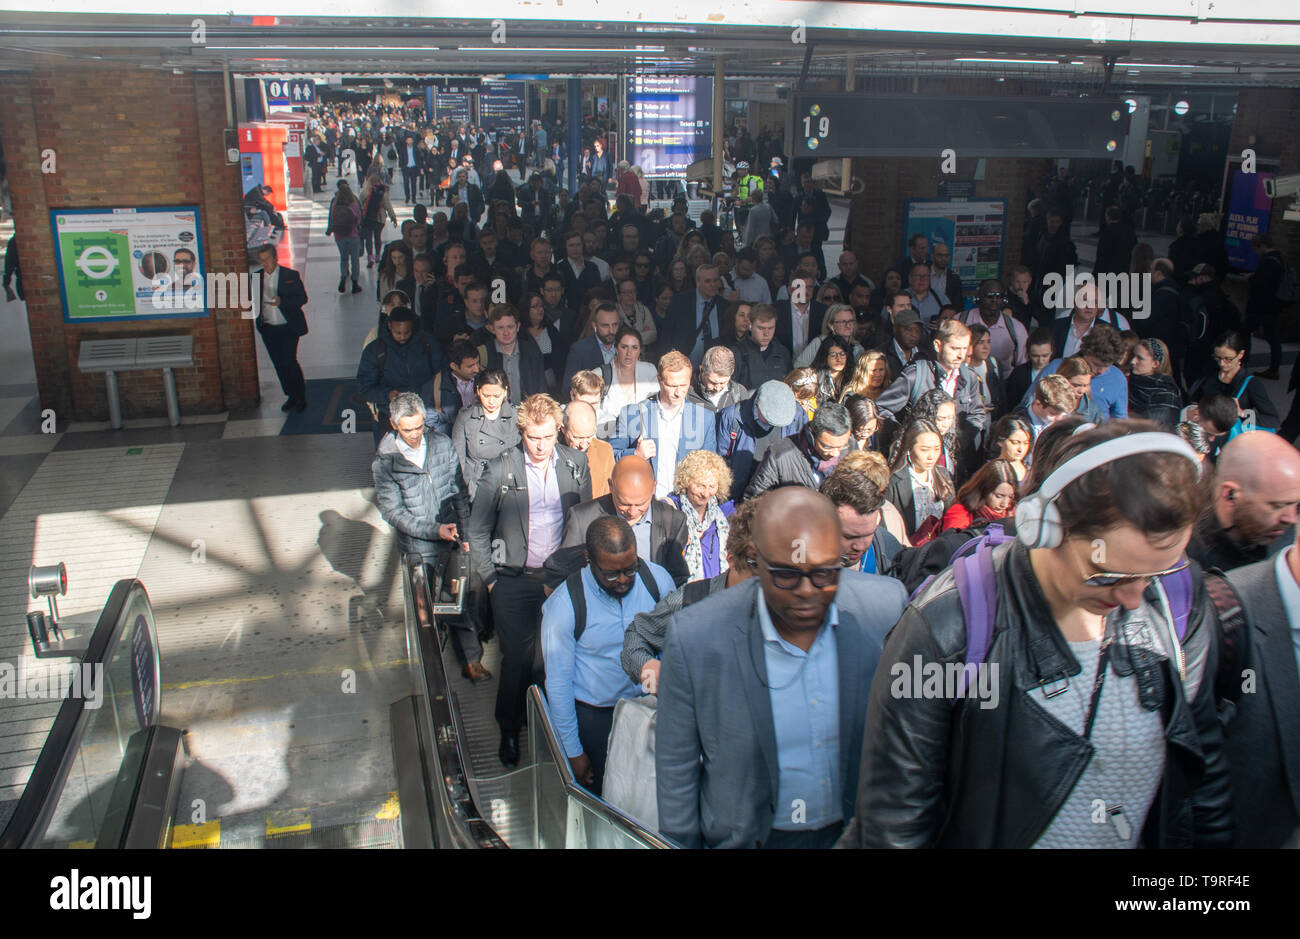 London Liverpool Street United Kingdom  -13 May 2019: Crowd of commuters queuing to leave rail Terminal via stairs - Stock Image